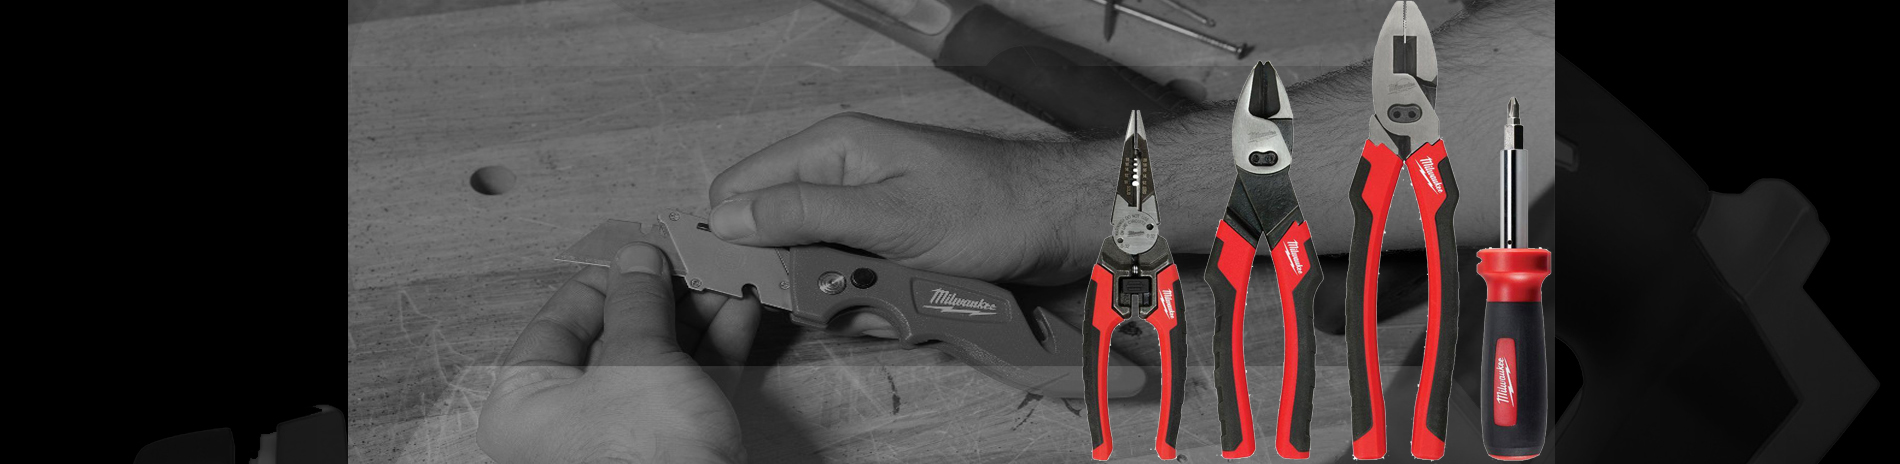 Tools Shop – Quickly and Affordable Items